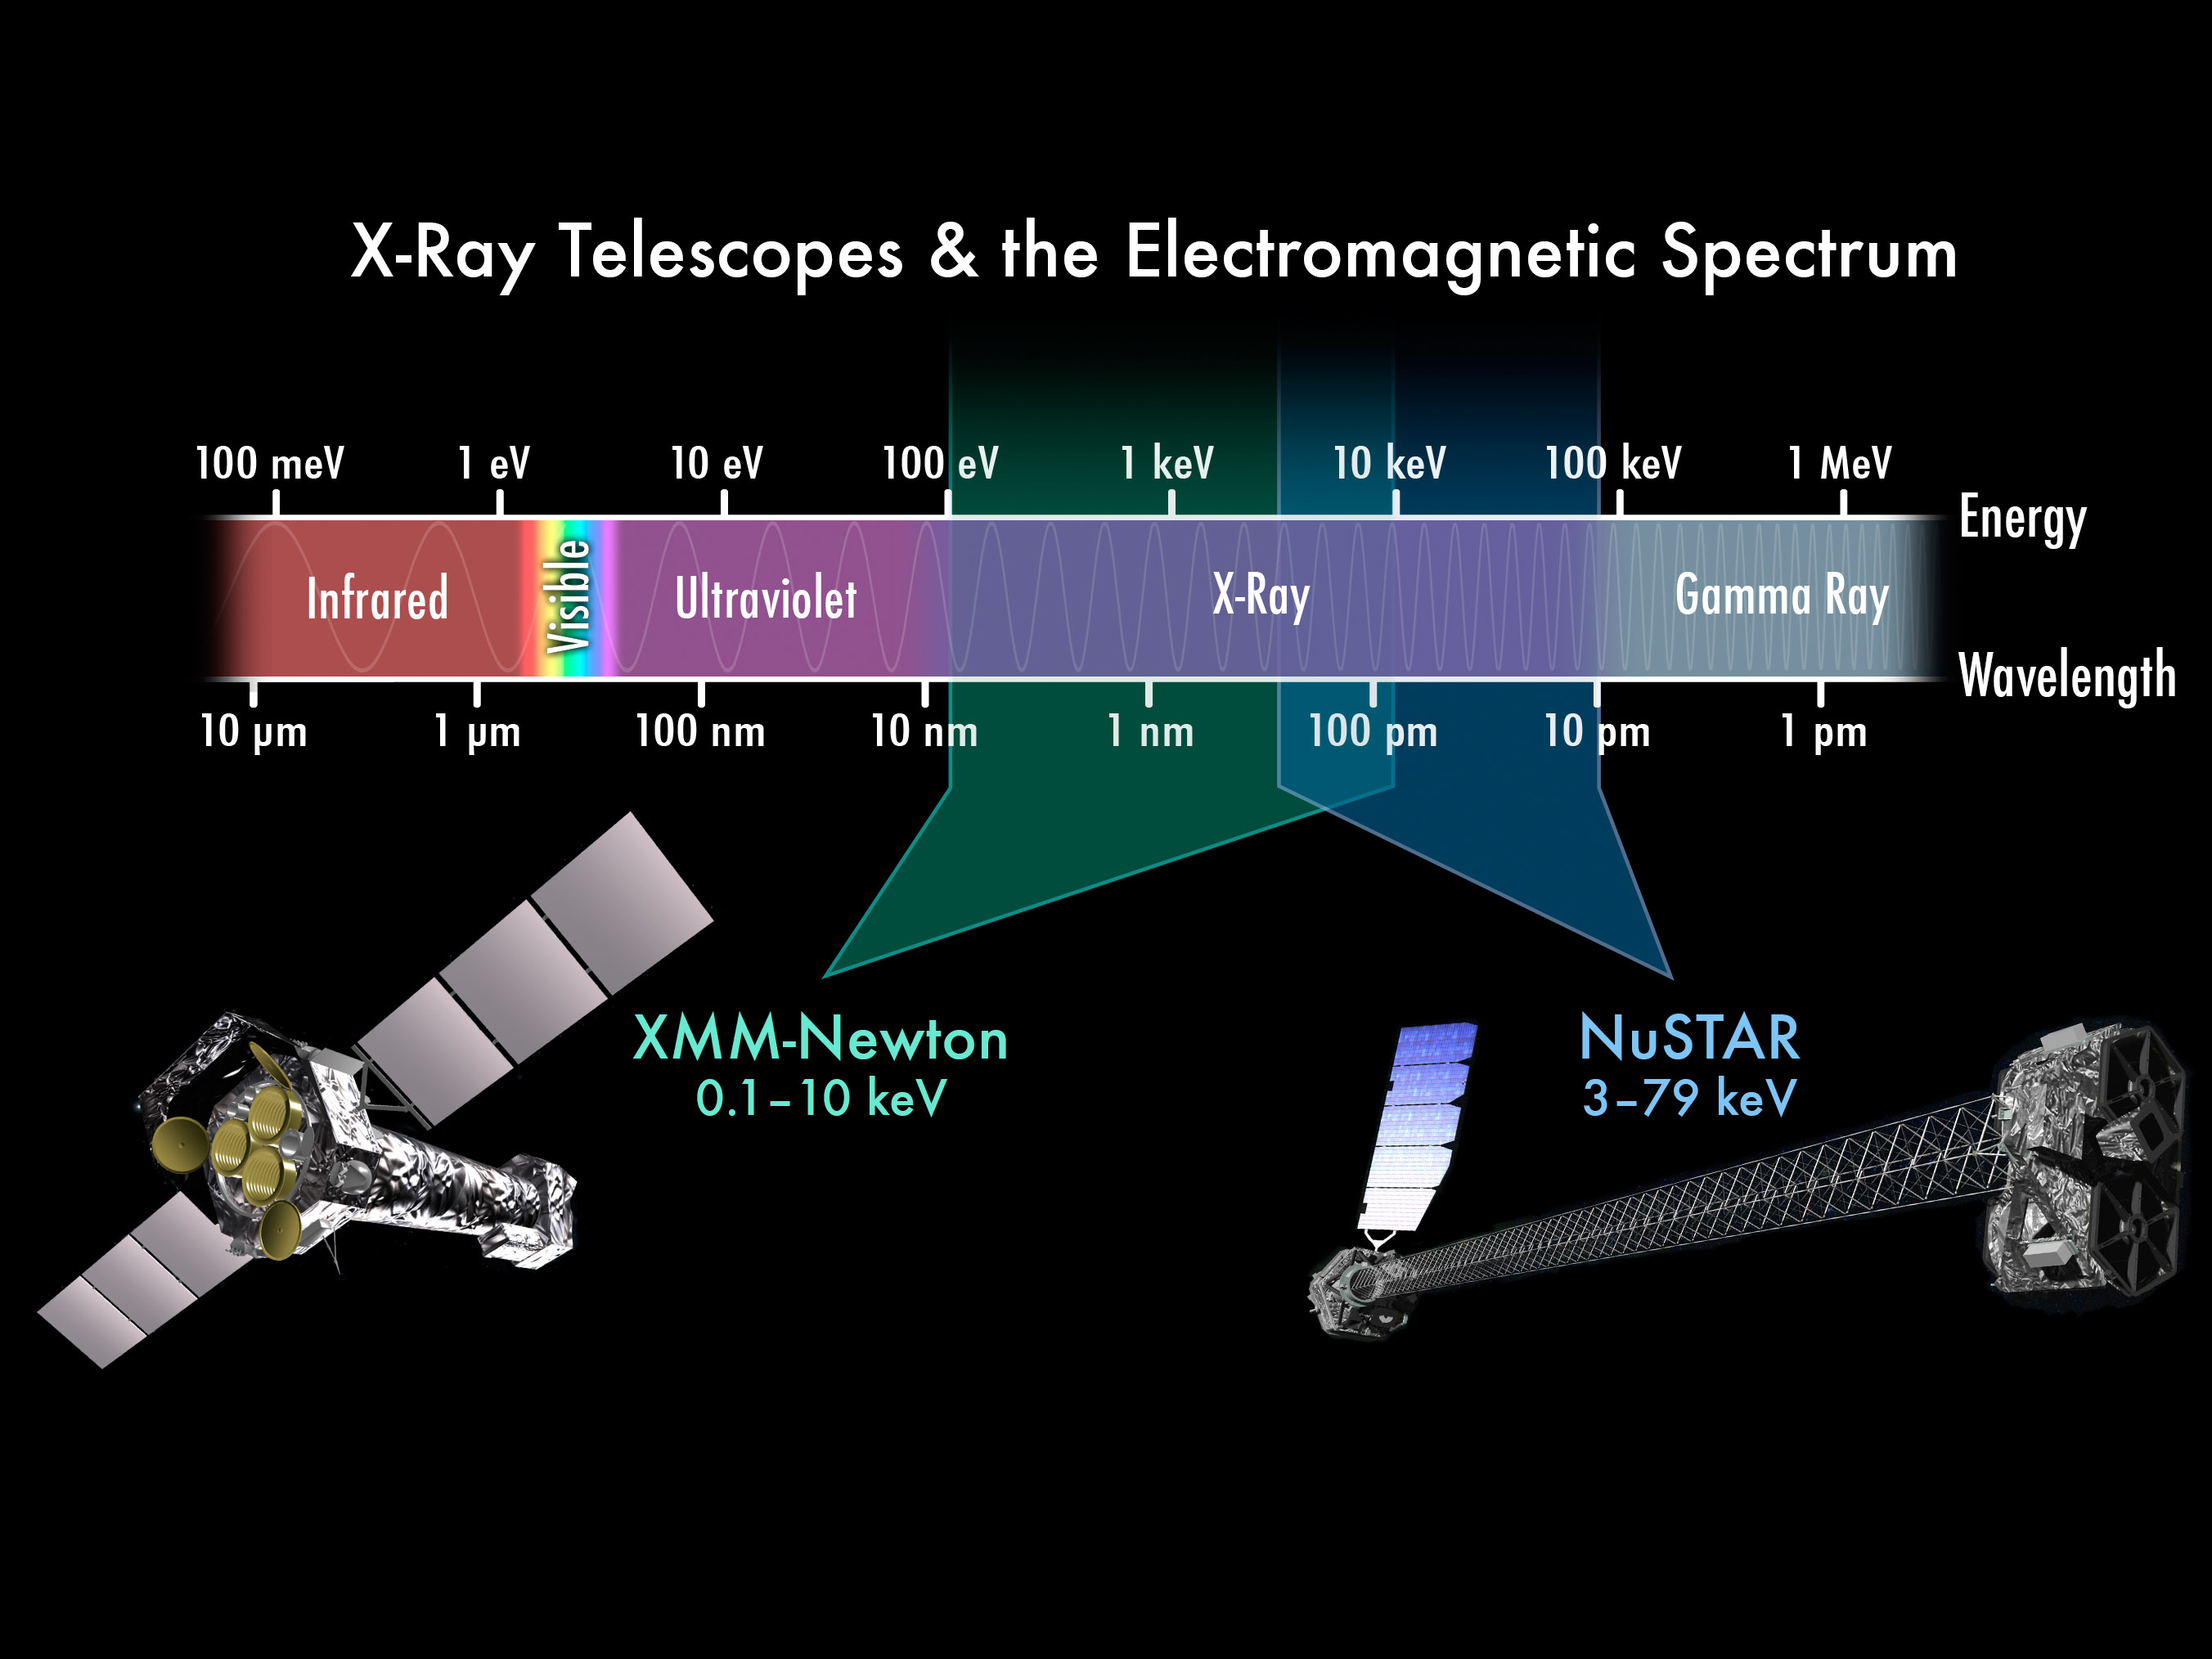 X-ray telescopes and electromagnetic spectrum